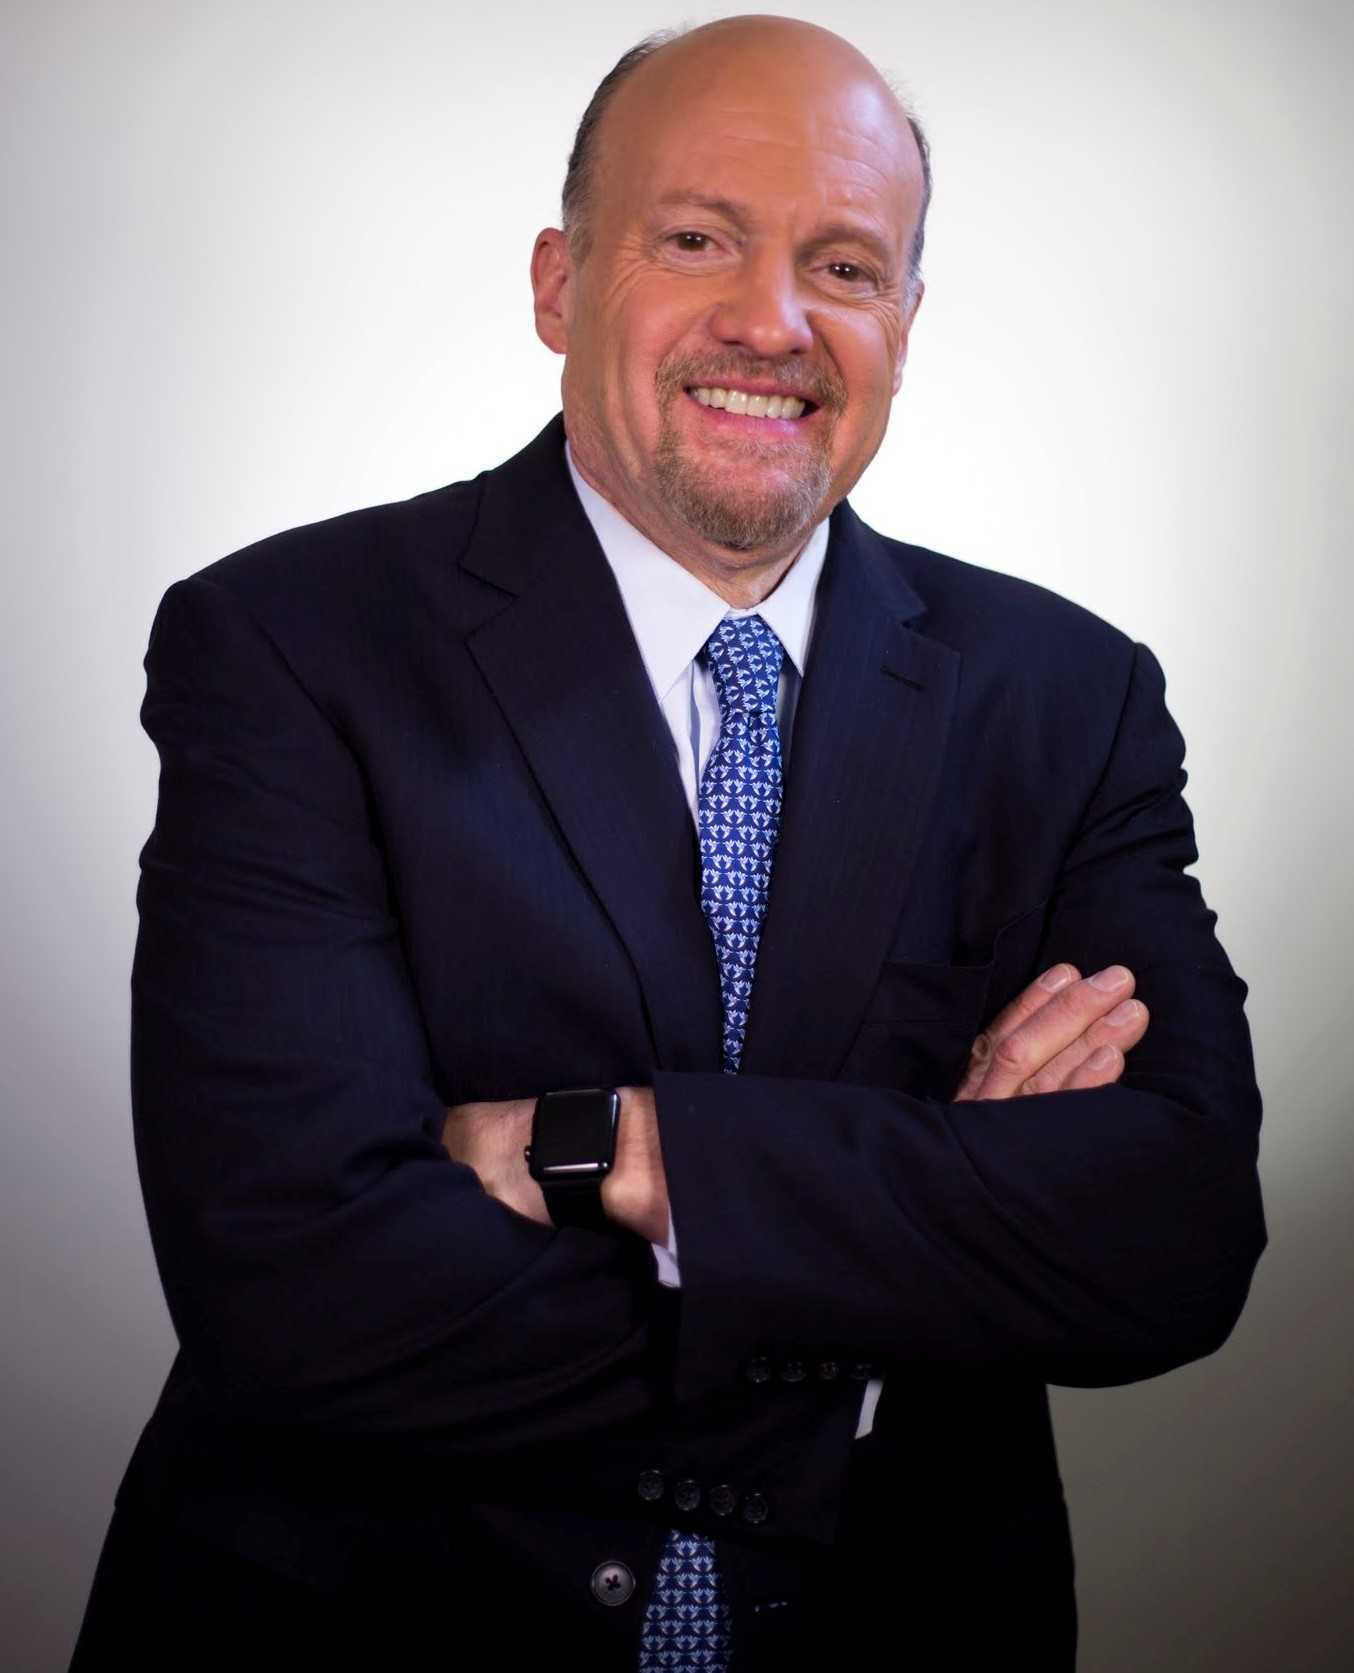 Jim Cramer Famous For